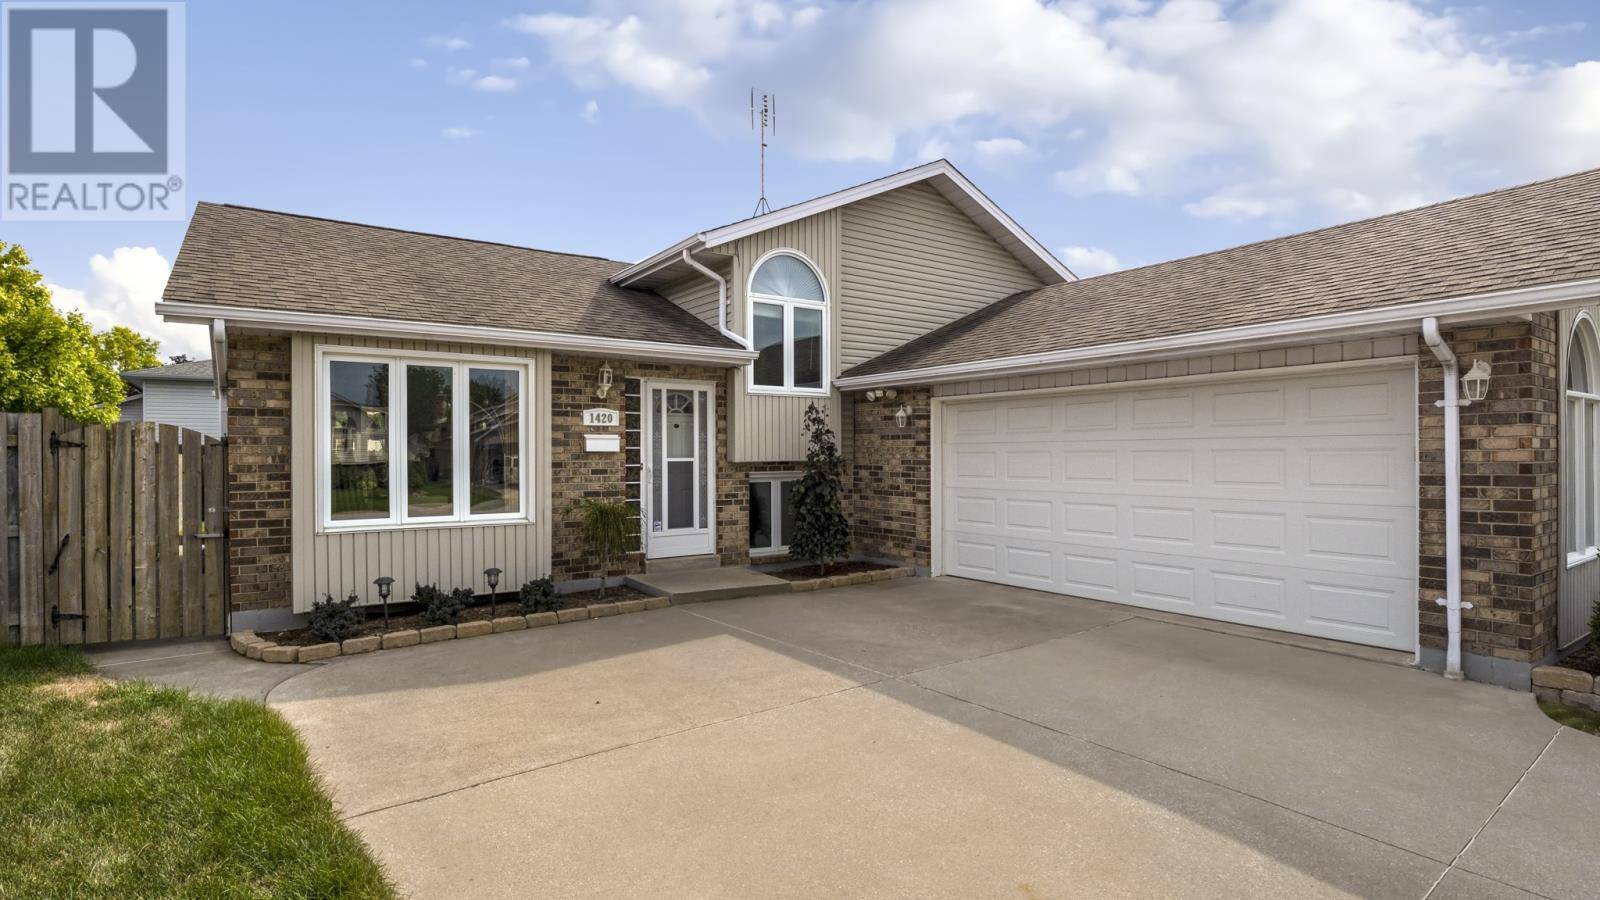 House for sale at 1420 Sugarwood  Lasalle Ontario - MLS: 19024978